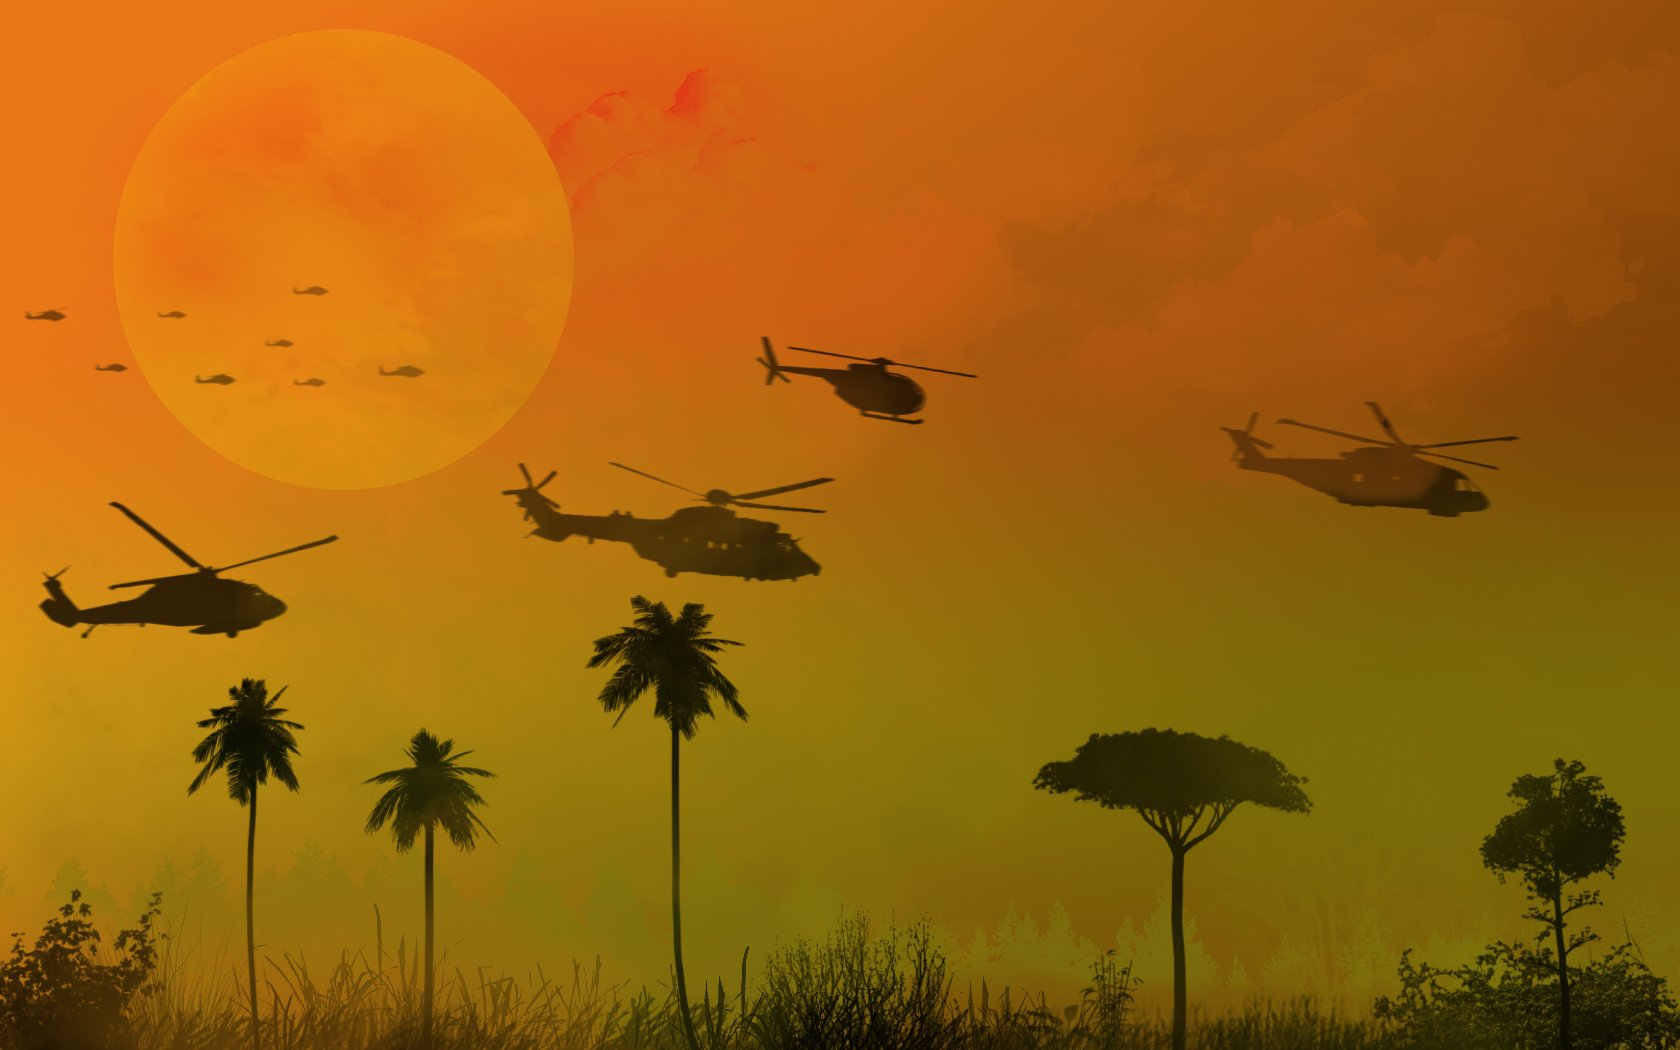 vietnam war wallpaper desktop